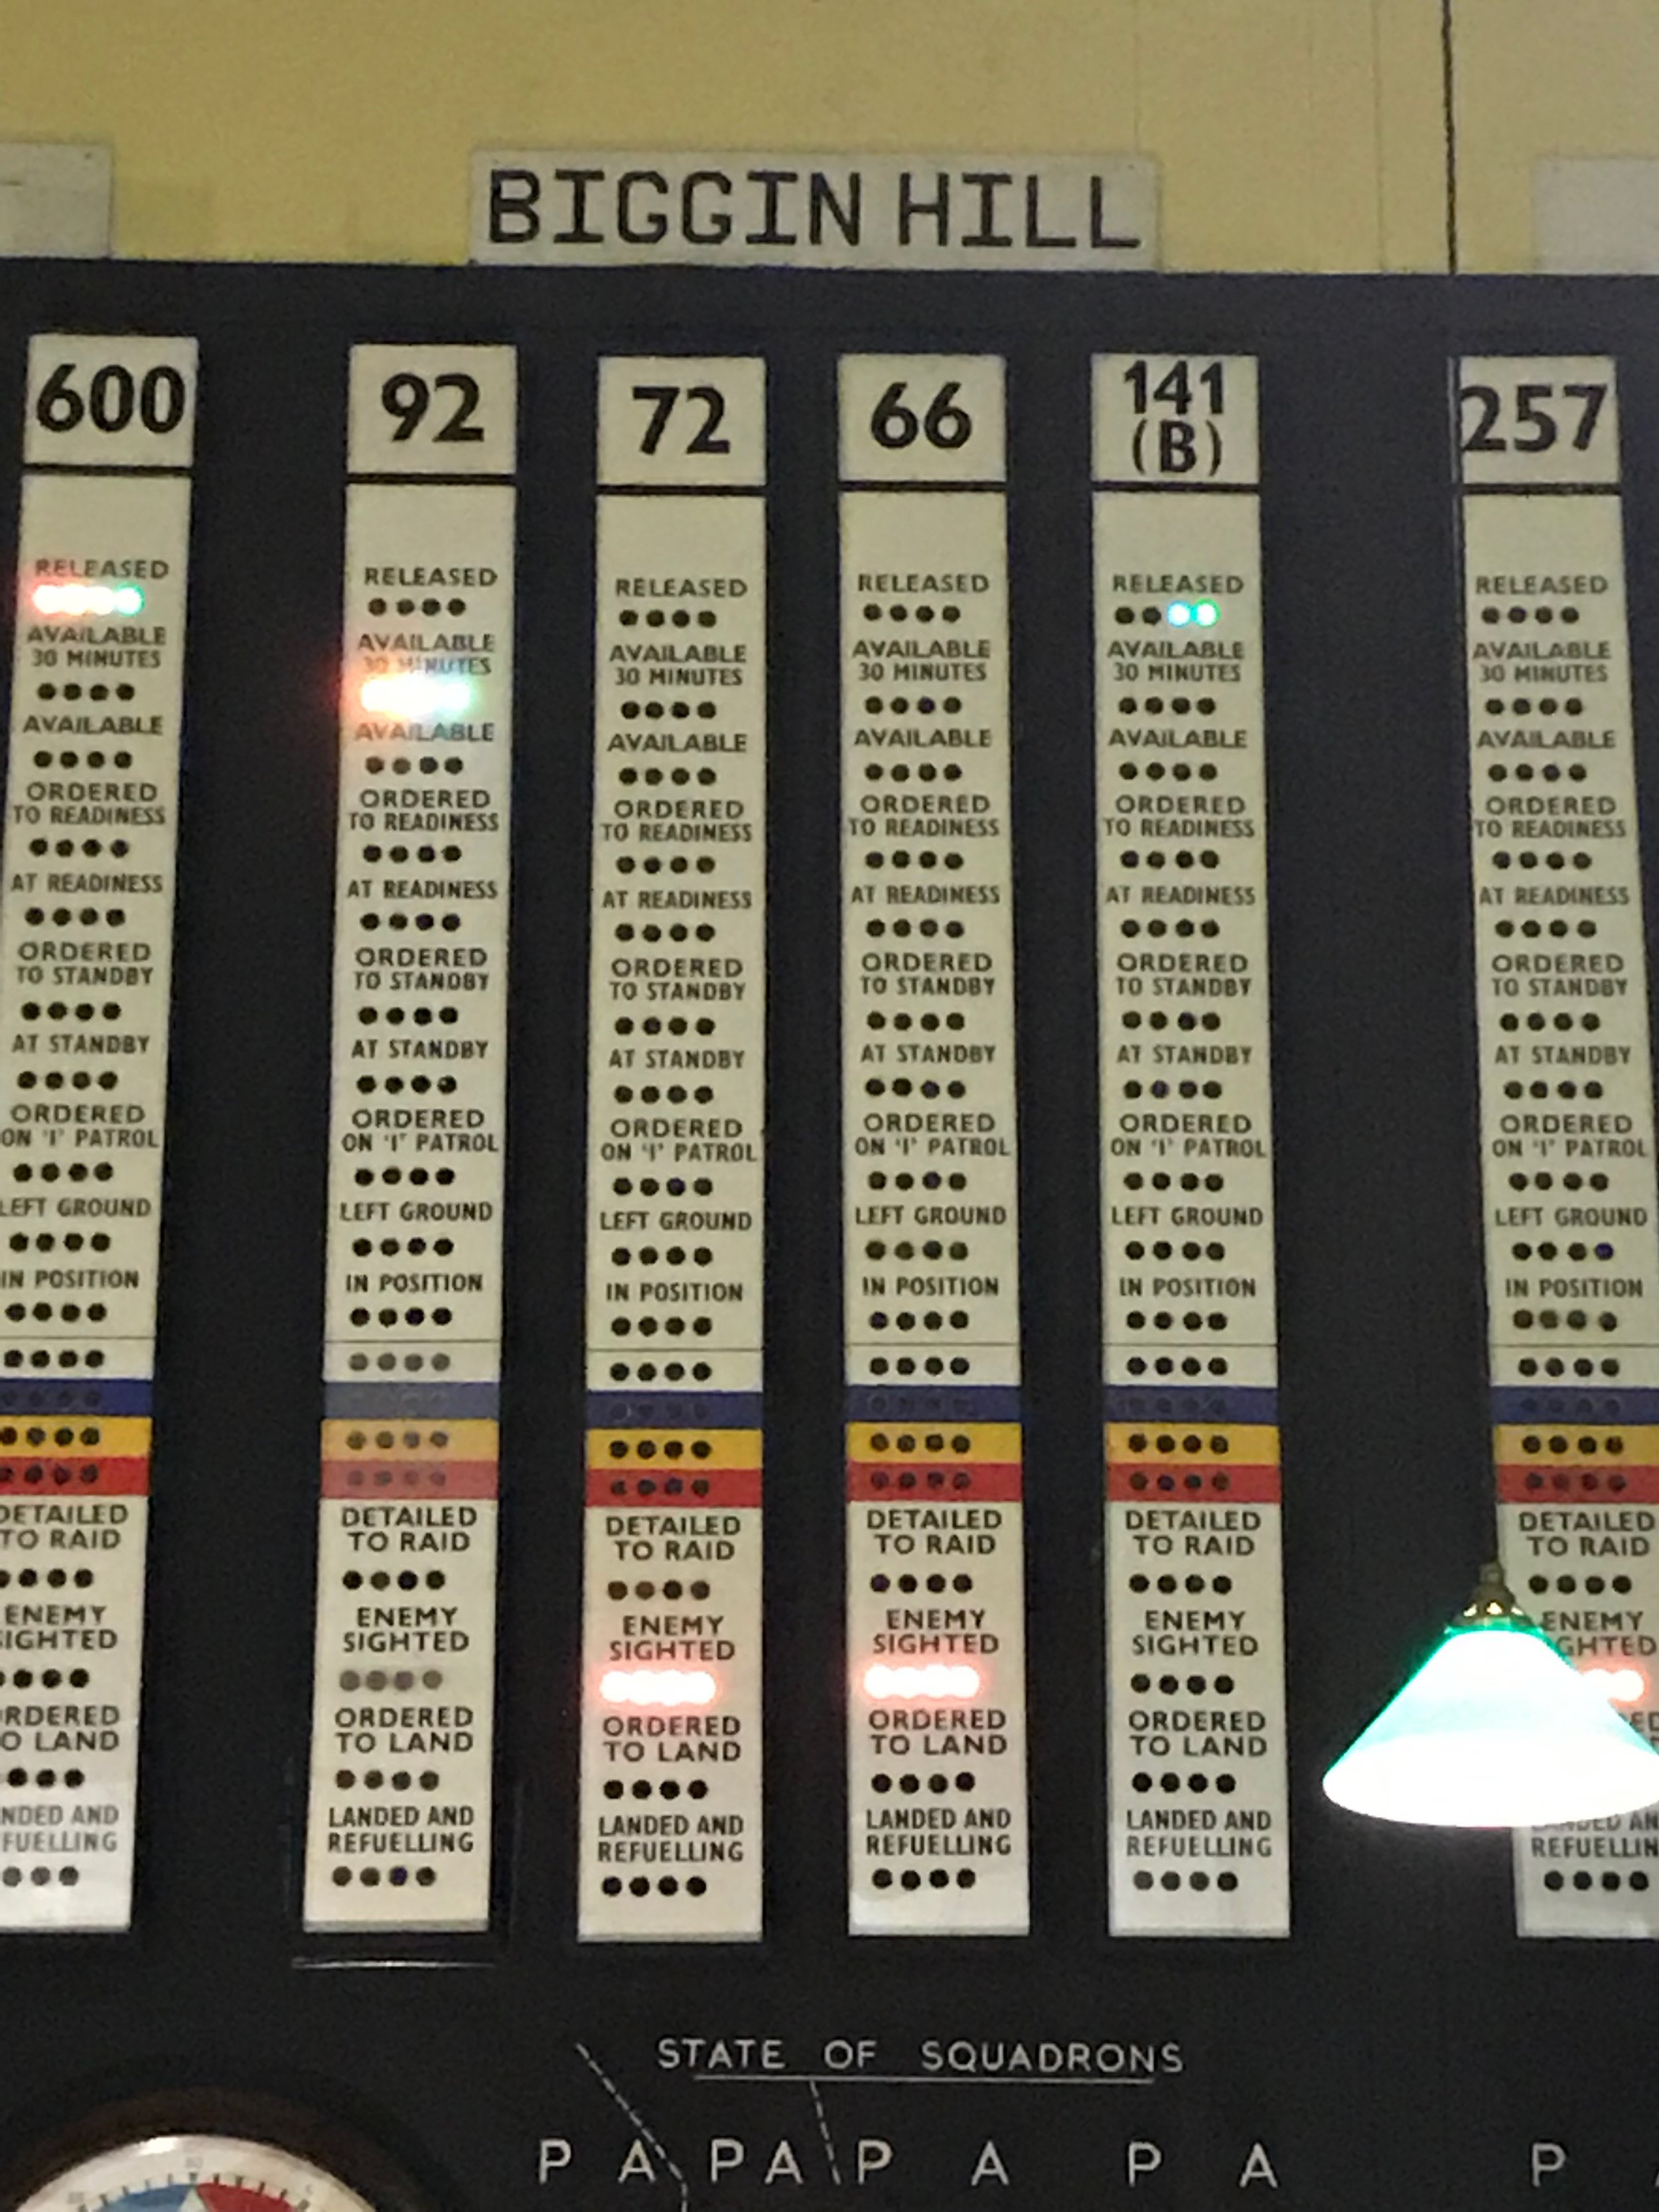 The status of each aircraft and crew was shown by a series of coloured lights